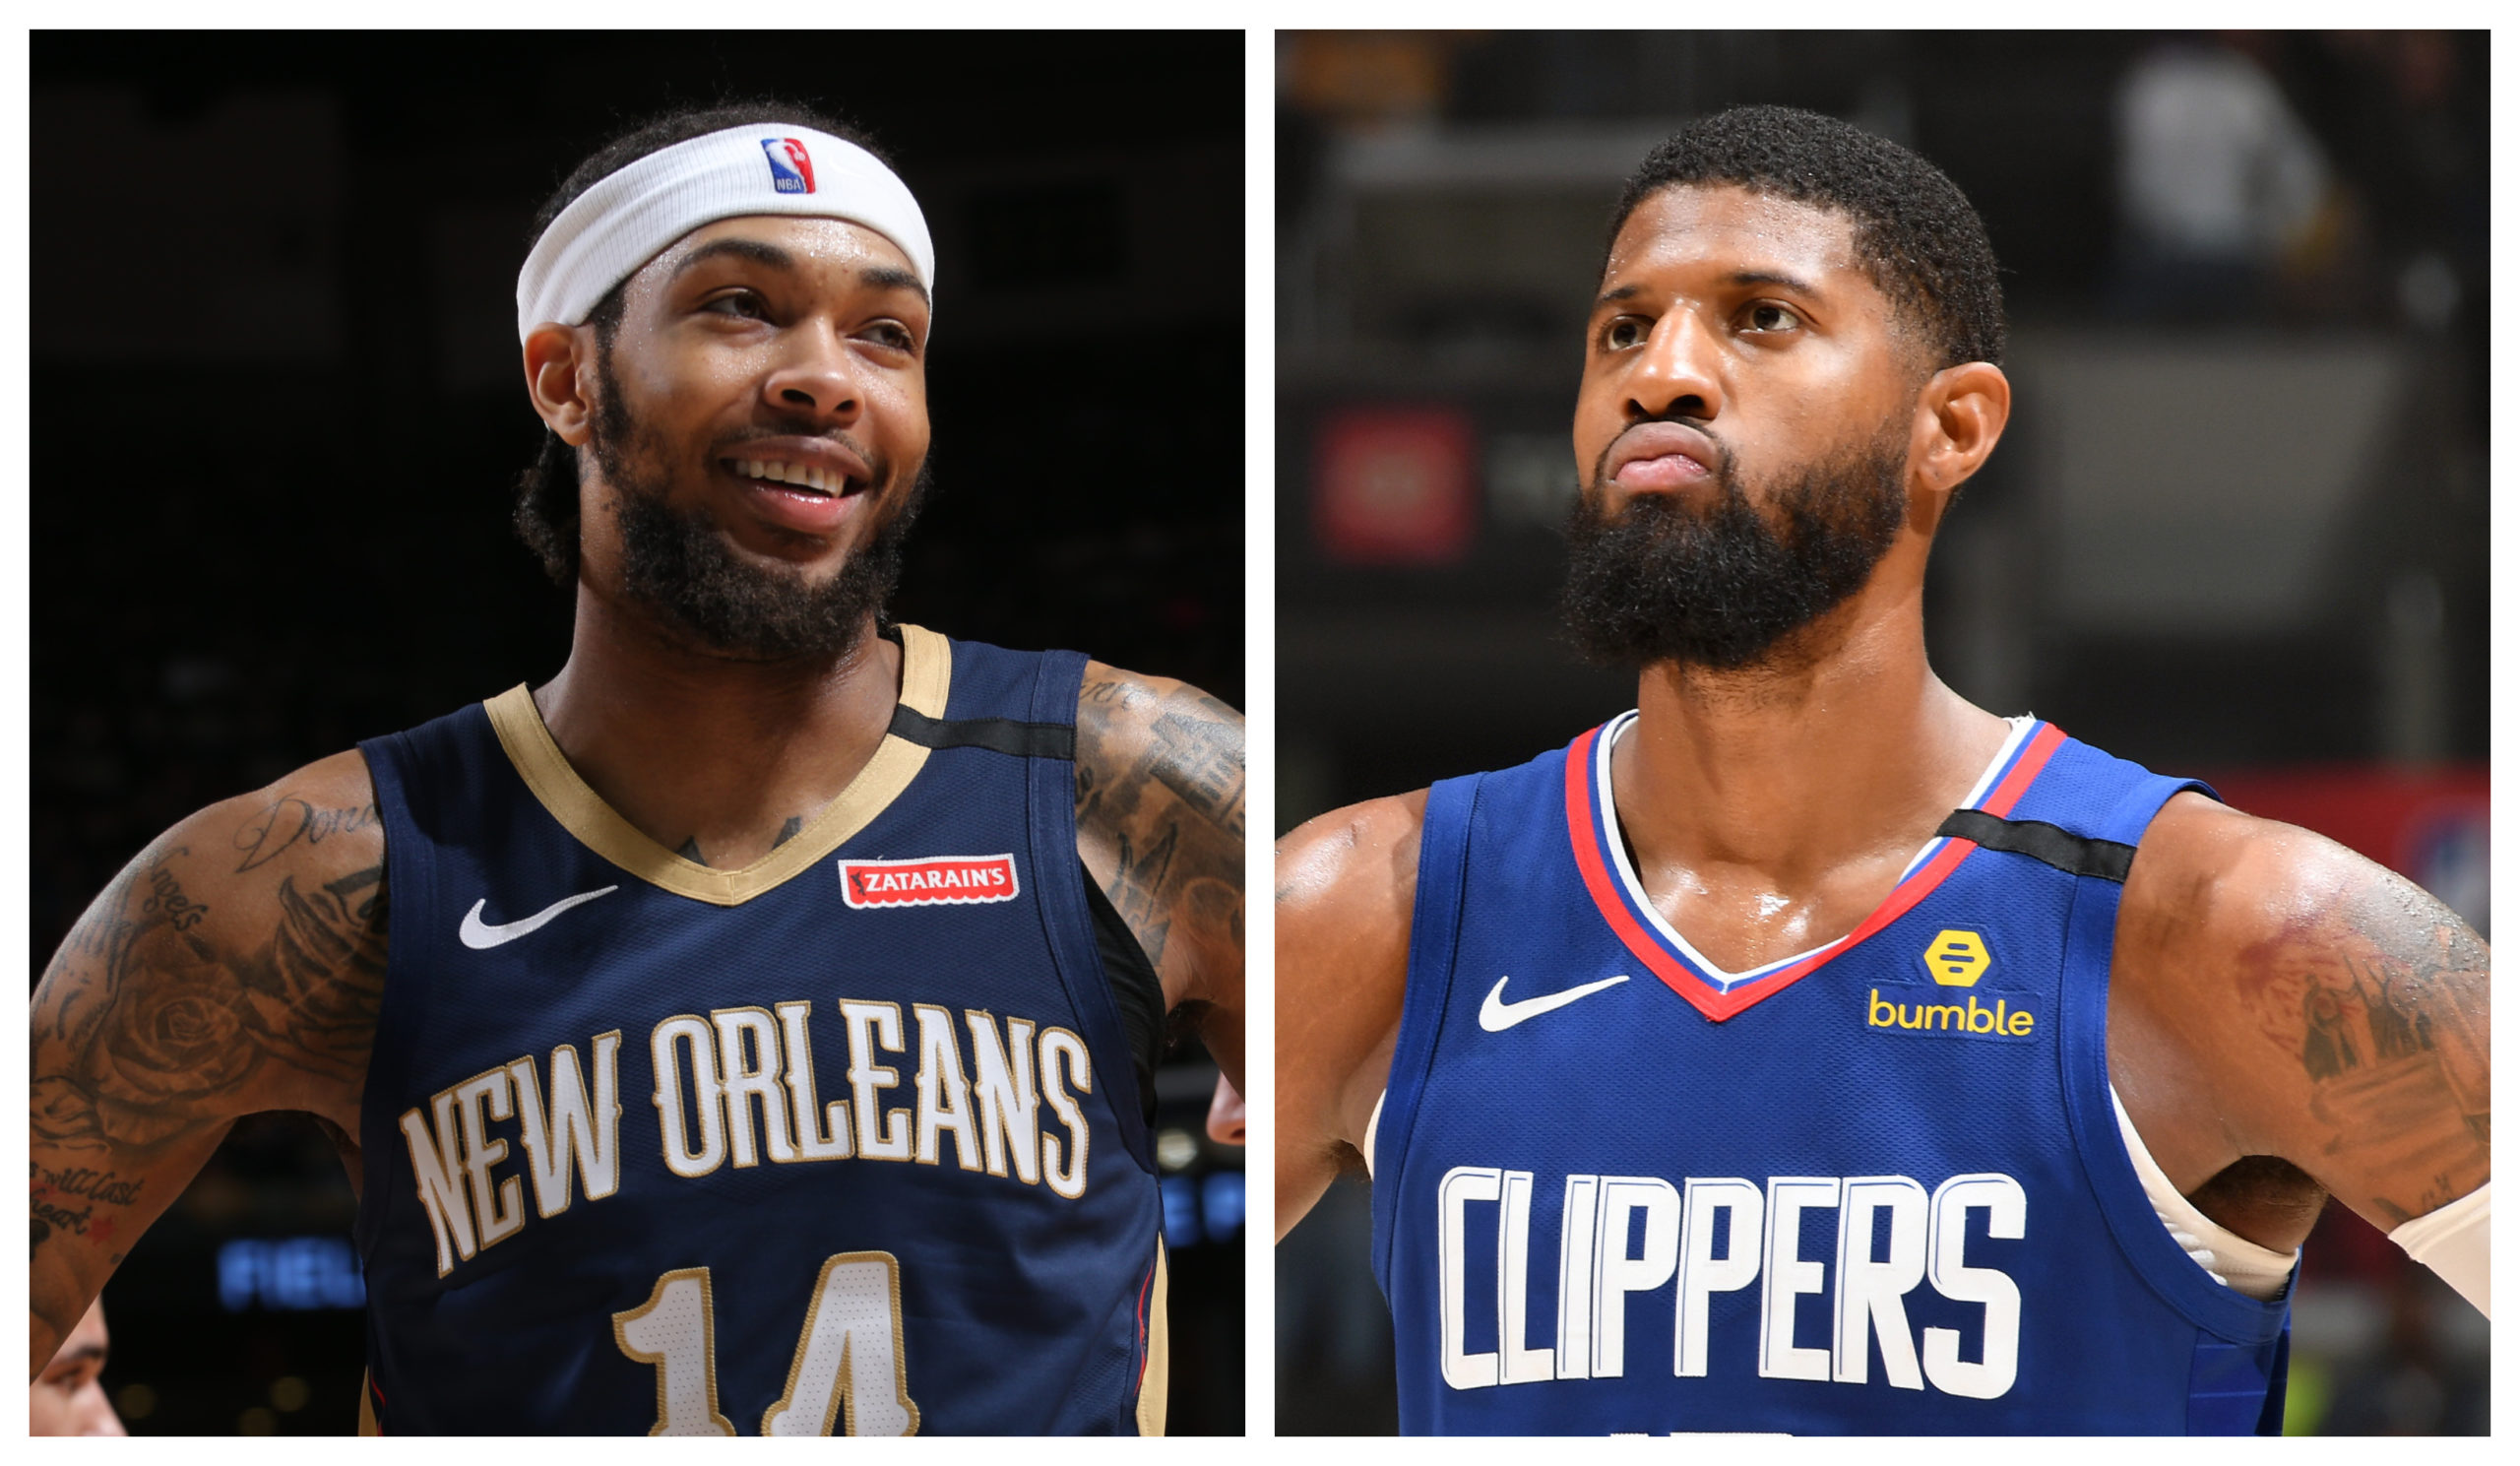 NBA Betting Odds, Picks and Predictions: Pelicans vs. Clippers (Saturday, Aug. 1) article feature image